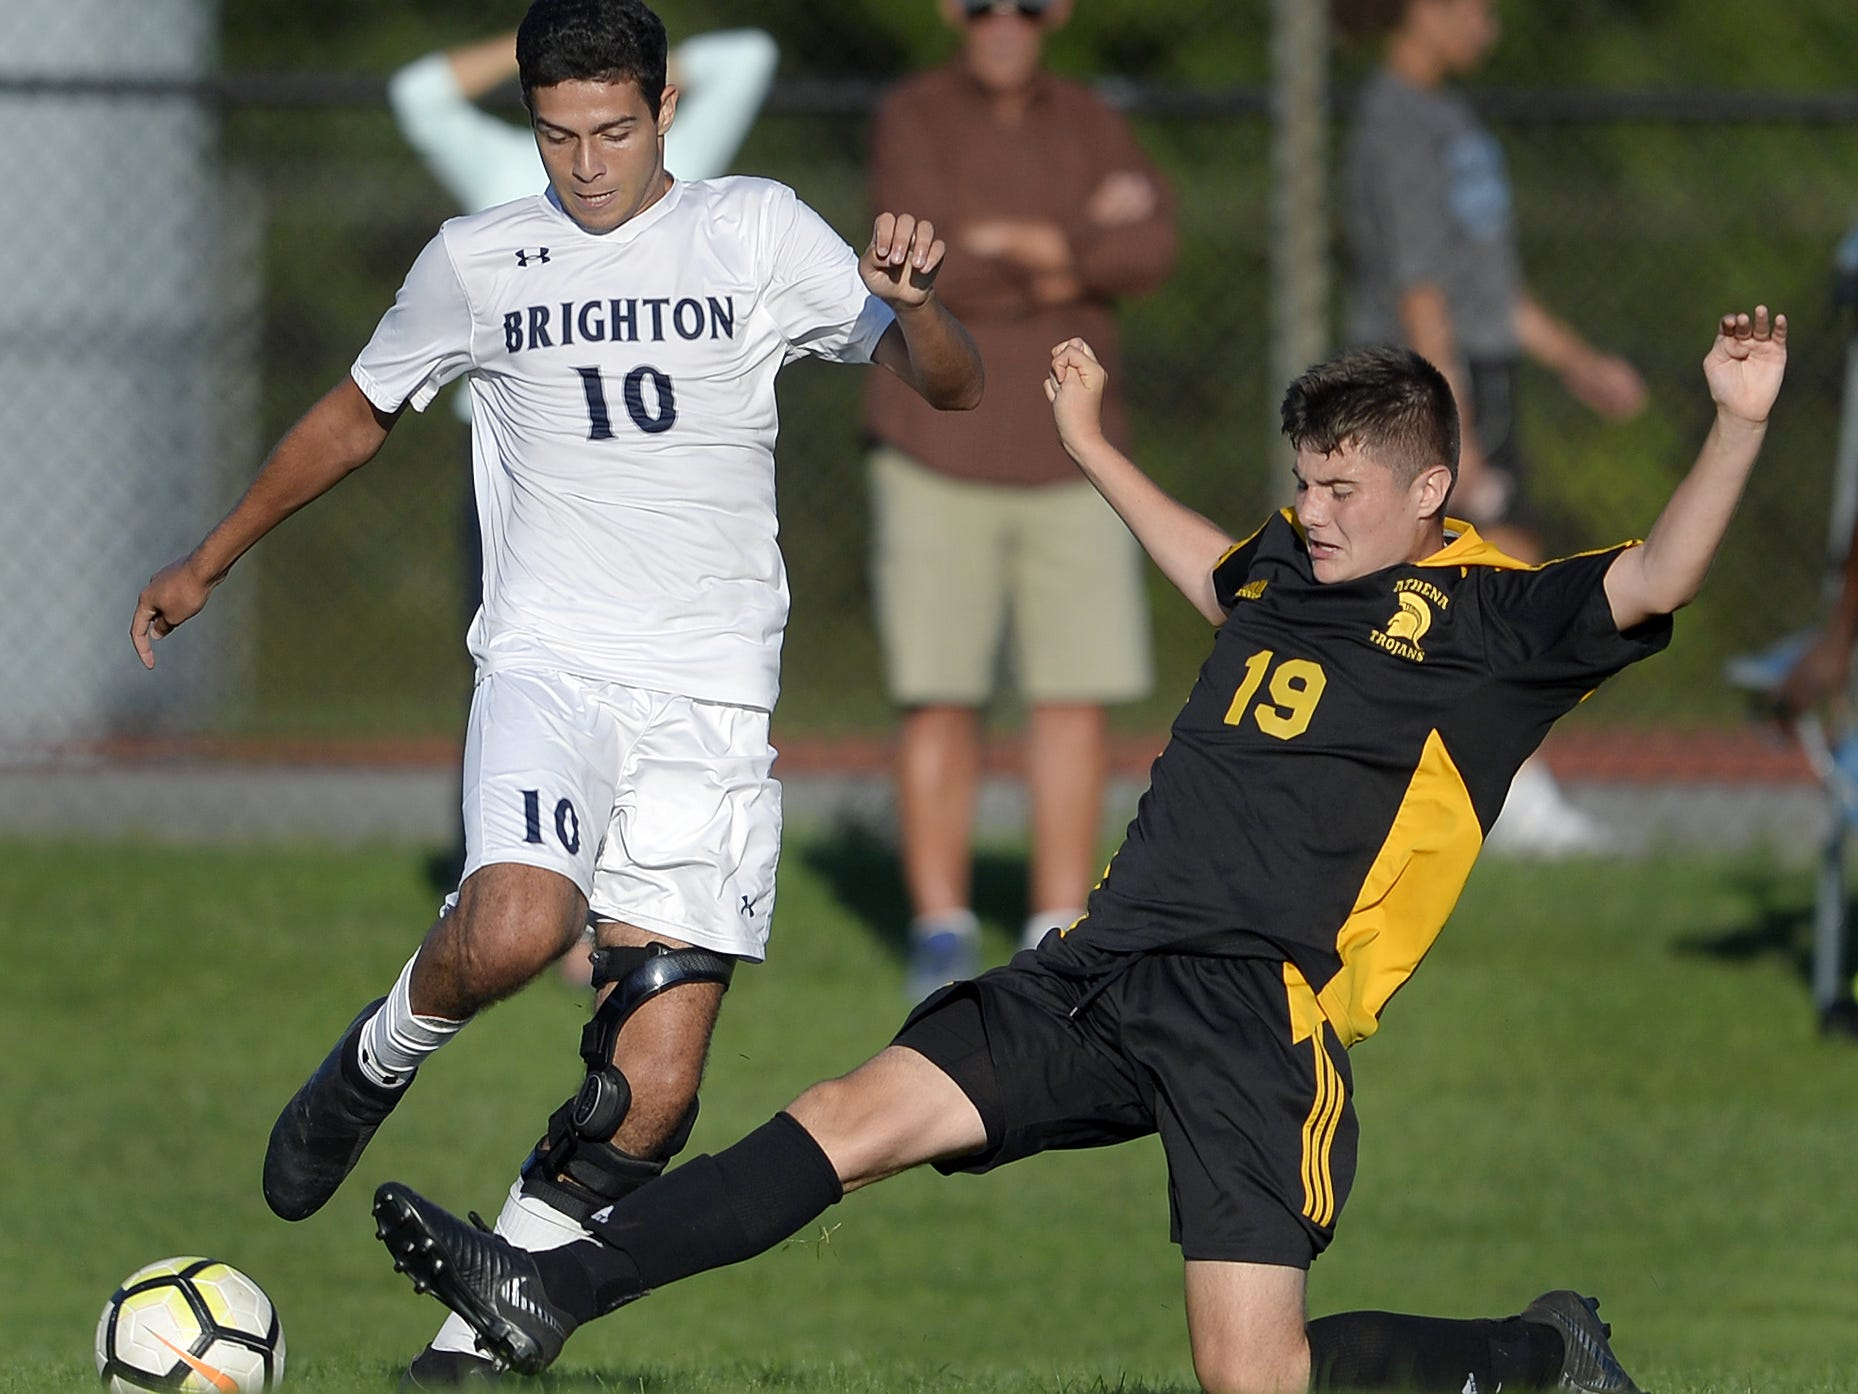 Brighton's Caio De Medeiros, left, is defended by Greece Athena's Gavin Rice during a regular season game played at Greece Athena High School, Thursday, Sept. 13, 2018. Greece Athena beat Brighton 1-0.